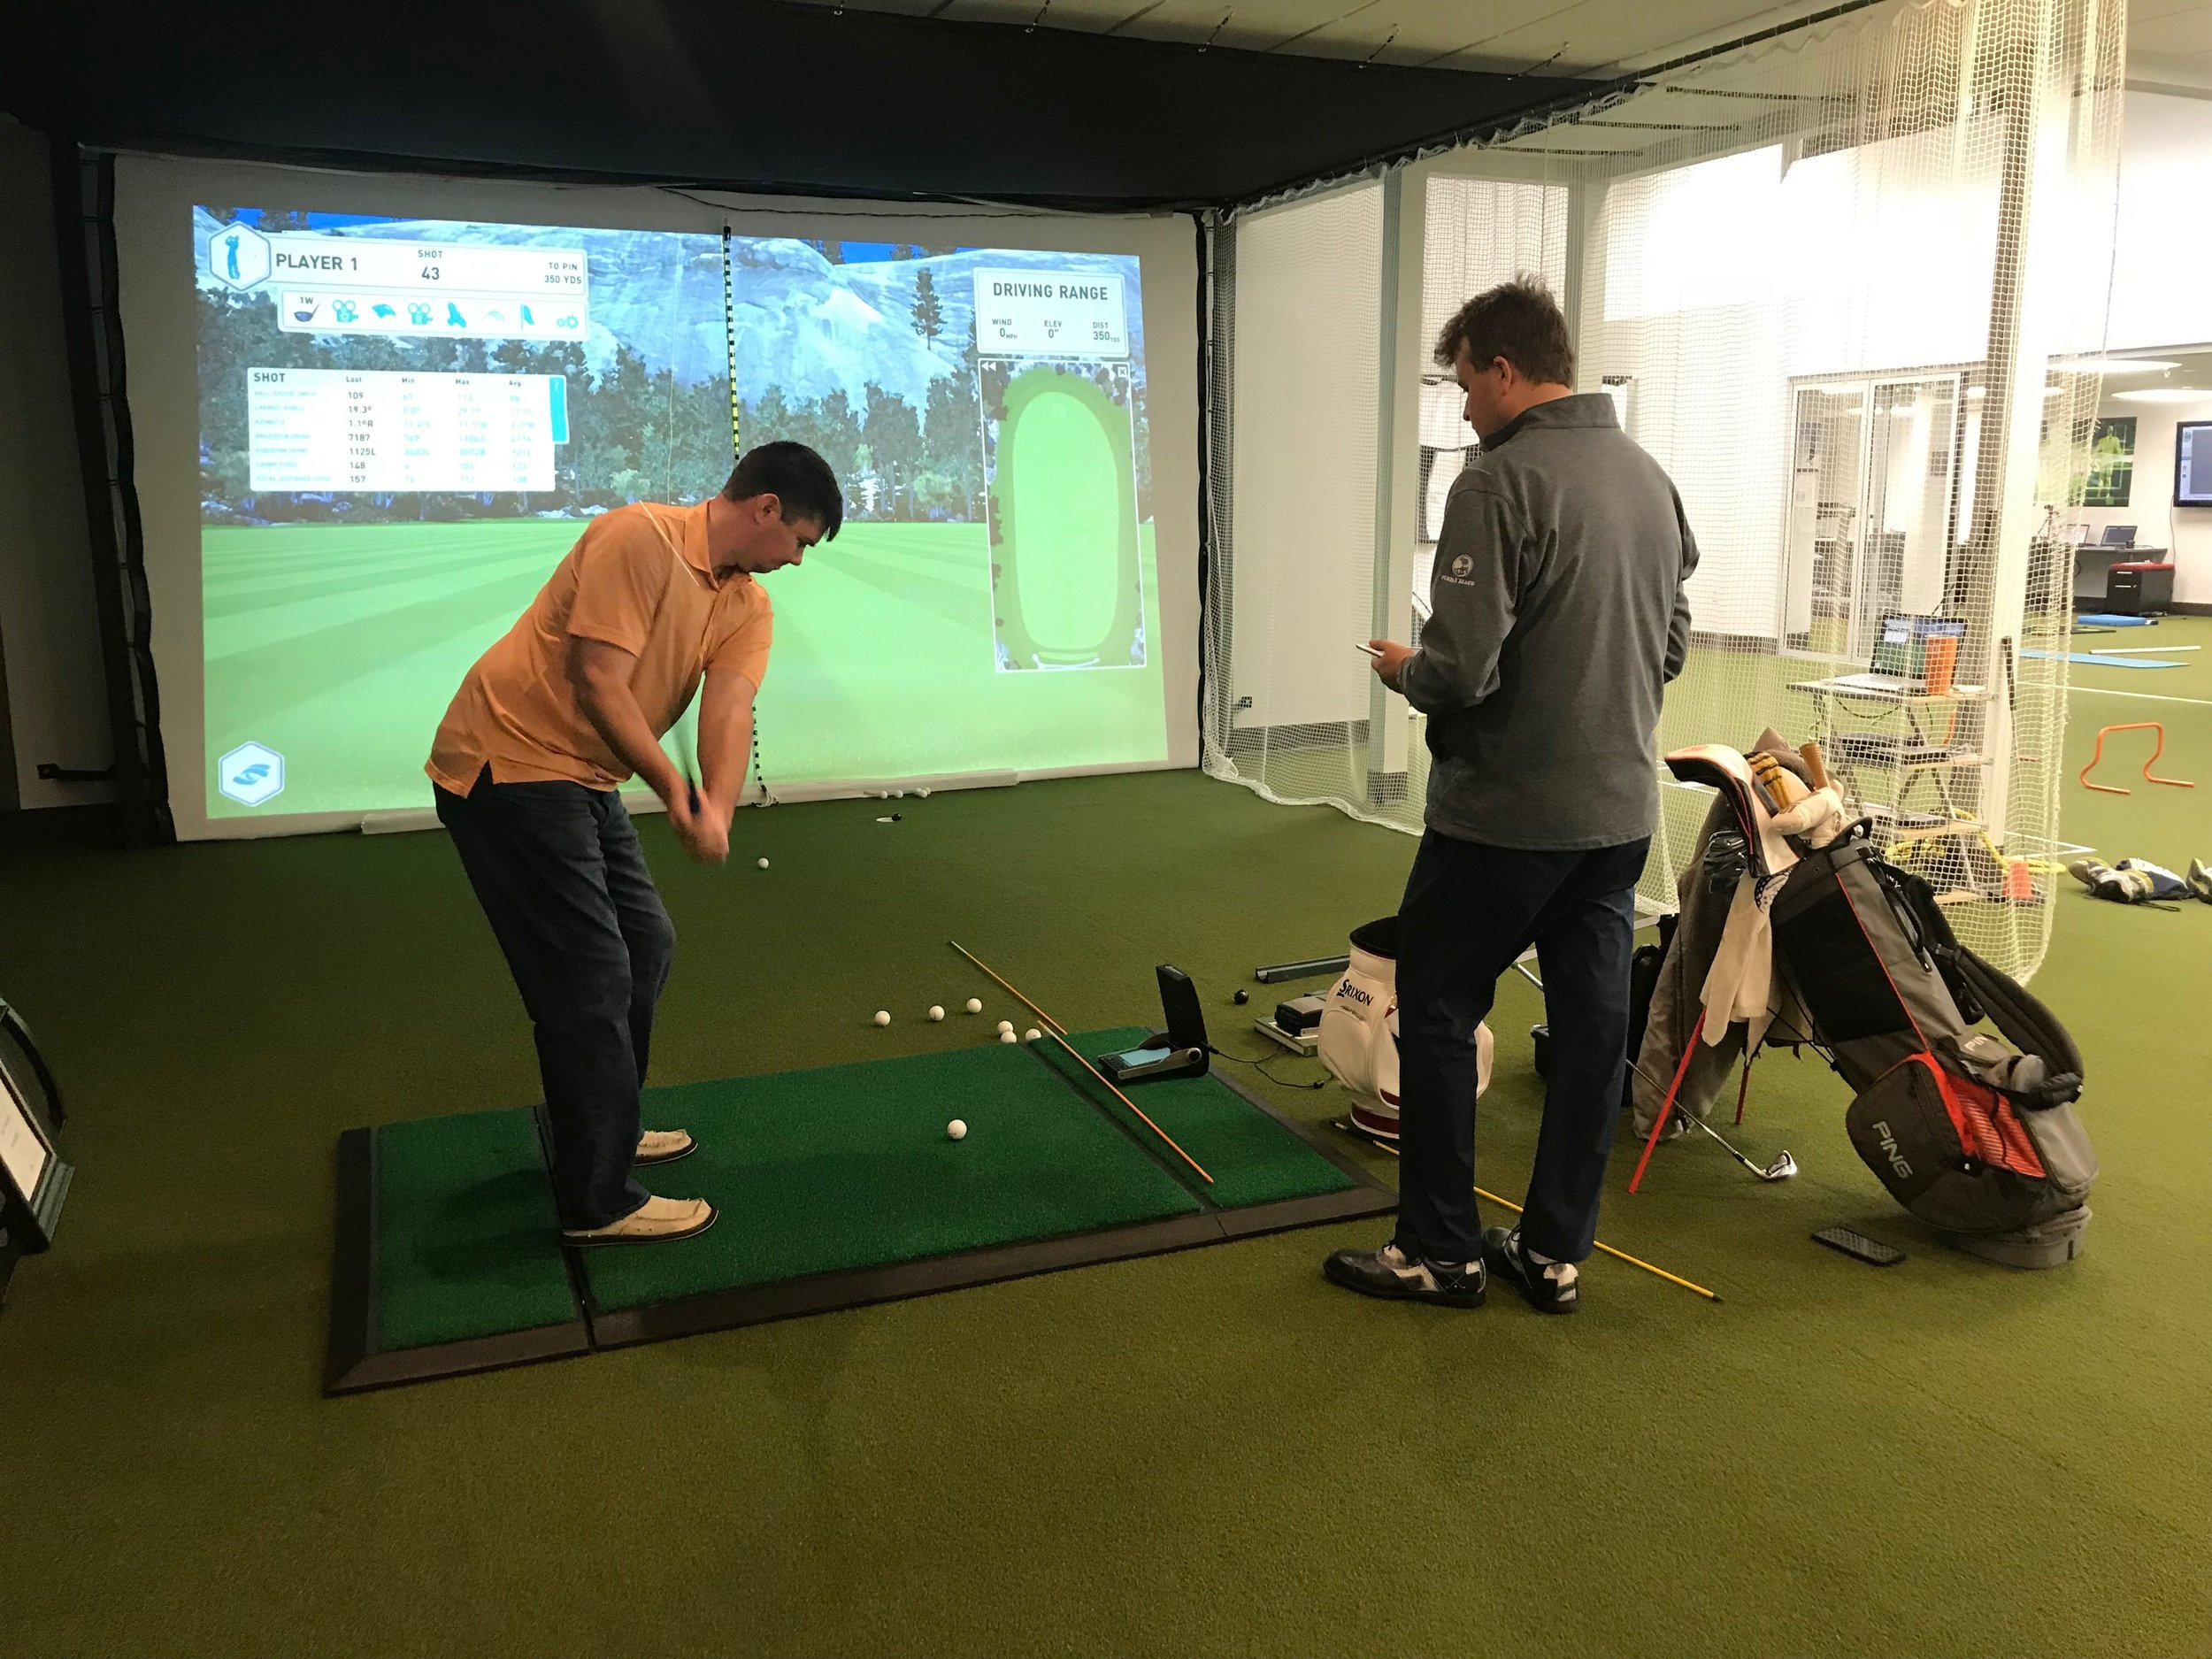 Indoor Instruction - Whether It is too hot or too cold, come indoors with me to this state of the art facility equipped with a Foresight Launch Monitor, exercise equipment, and even 3-d analysis of your swing!